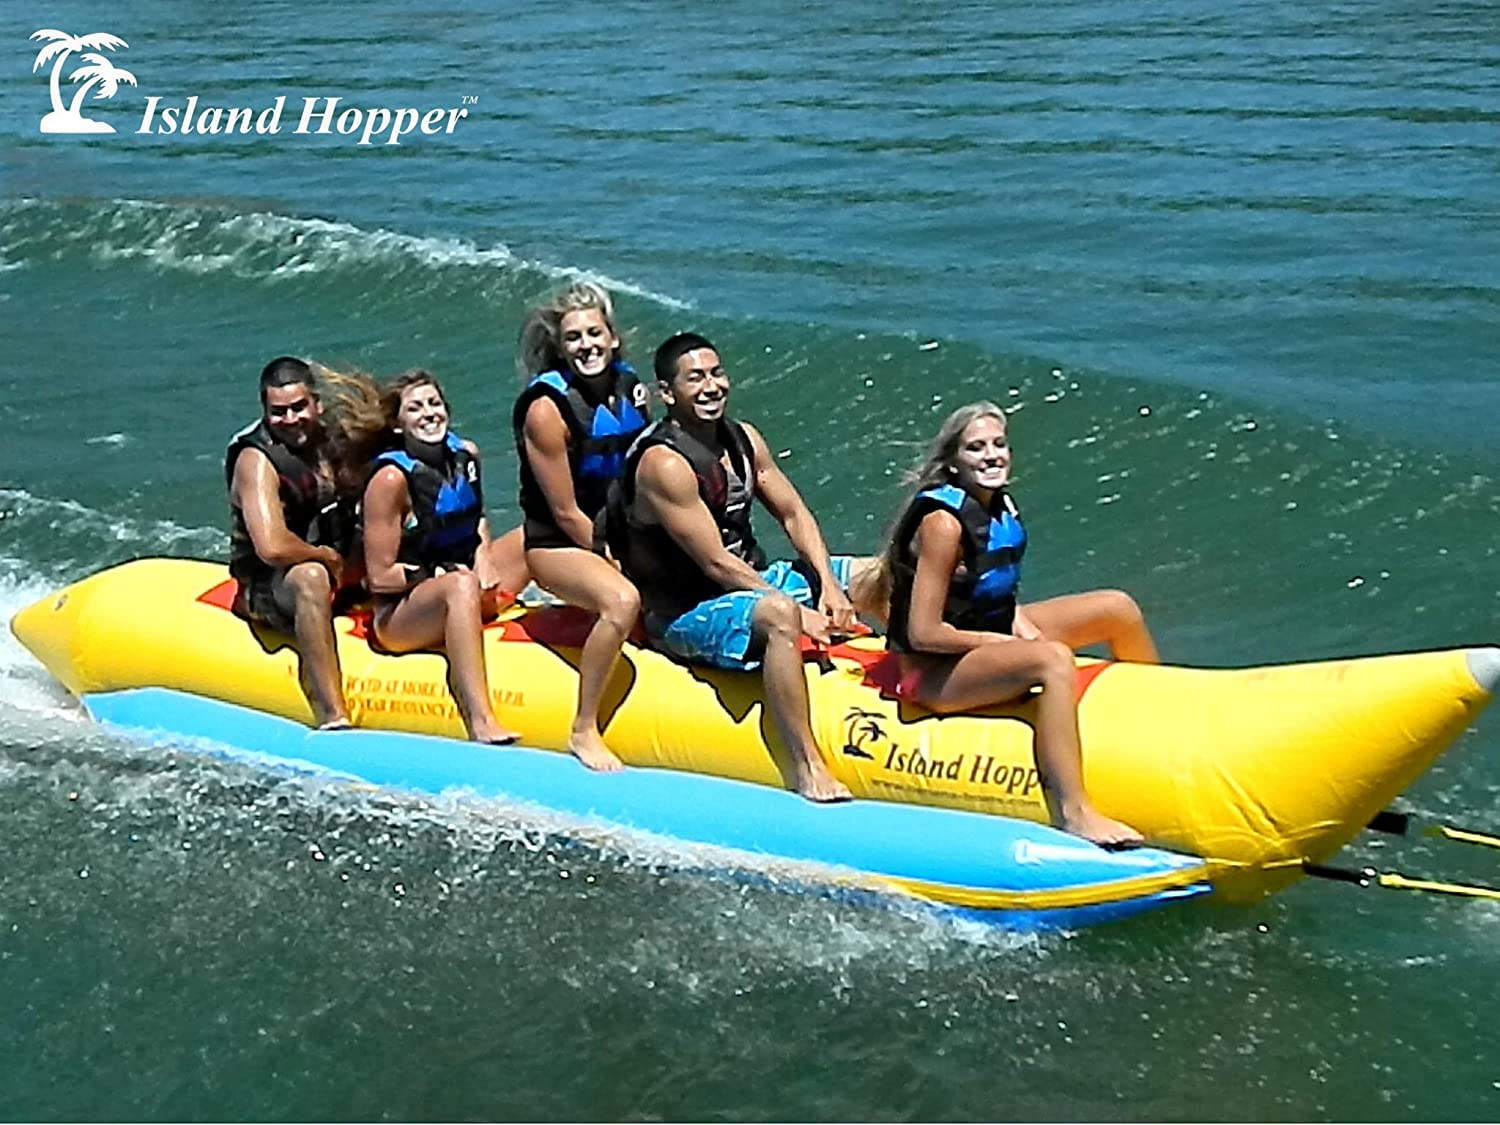 Amazon.com: Island Hopper Recreational Banana Boat 3 Passenger Towable  Tube: Sports & Outdoors